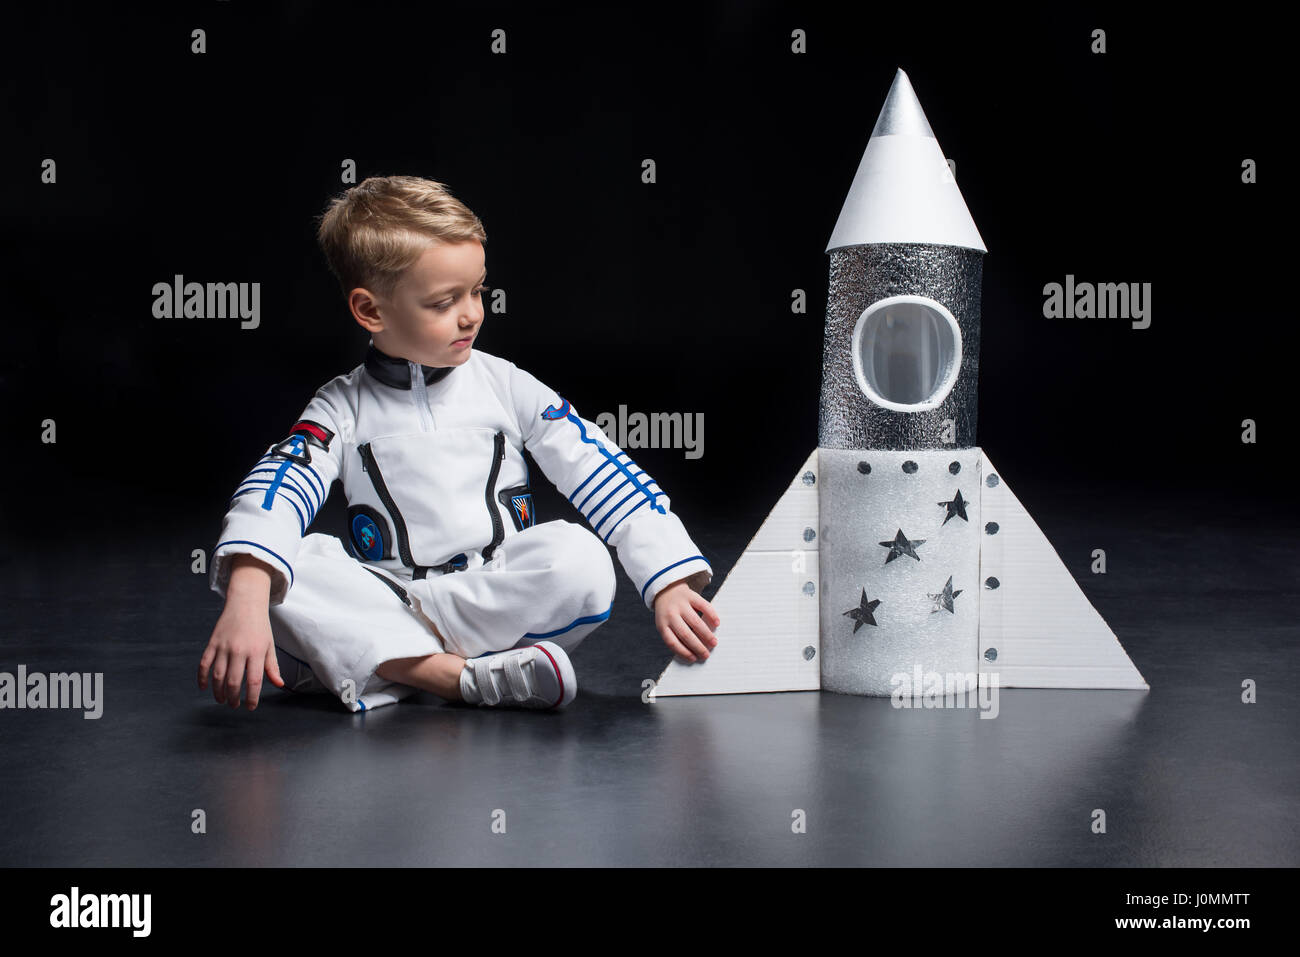 Little Boy Astronaut In Space Suit Sitting And Looking At Toy Spaceship